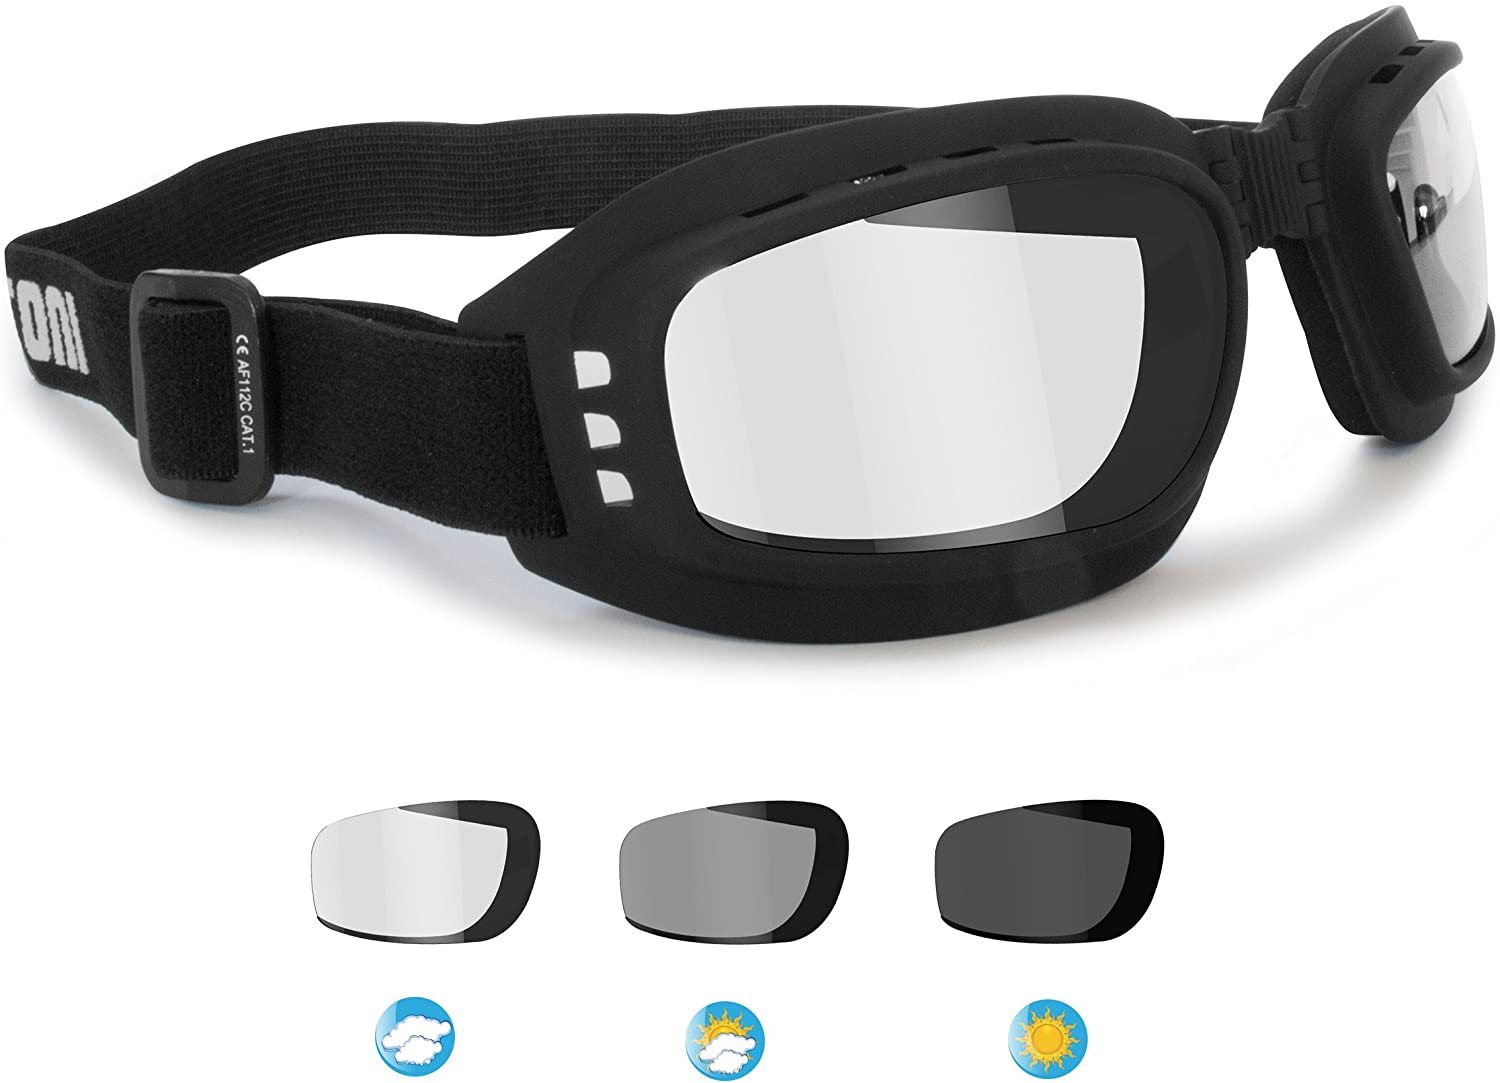 MOTORCYCLE GOGGLES SPORTS Basketball Football BIKE BIKERS CYCLE Accessories New